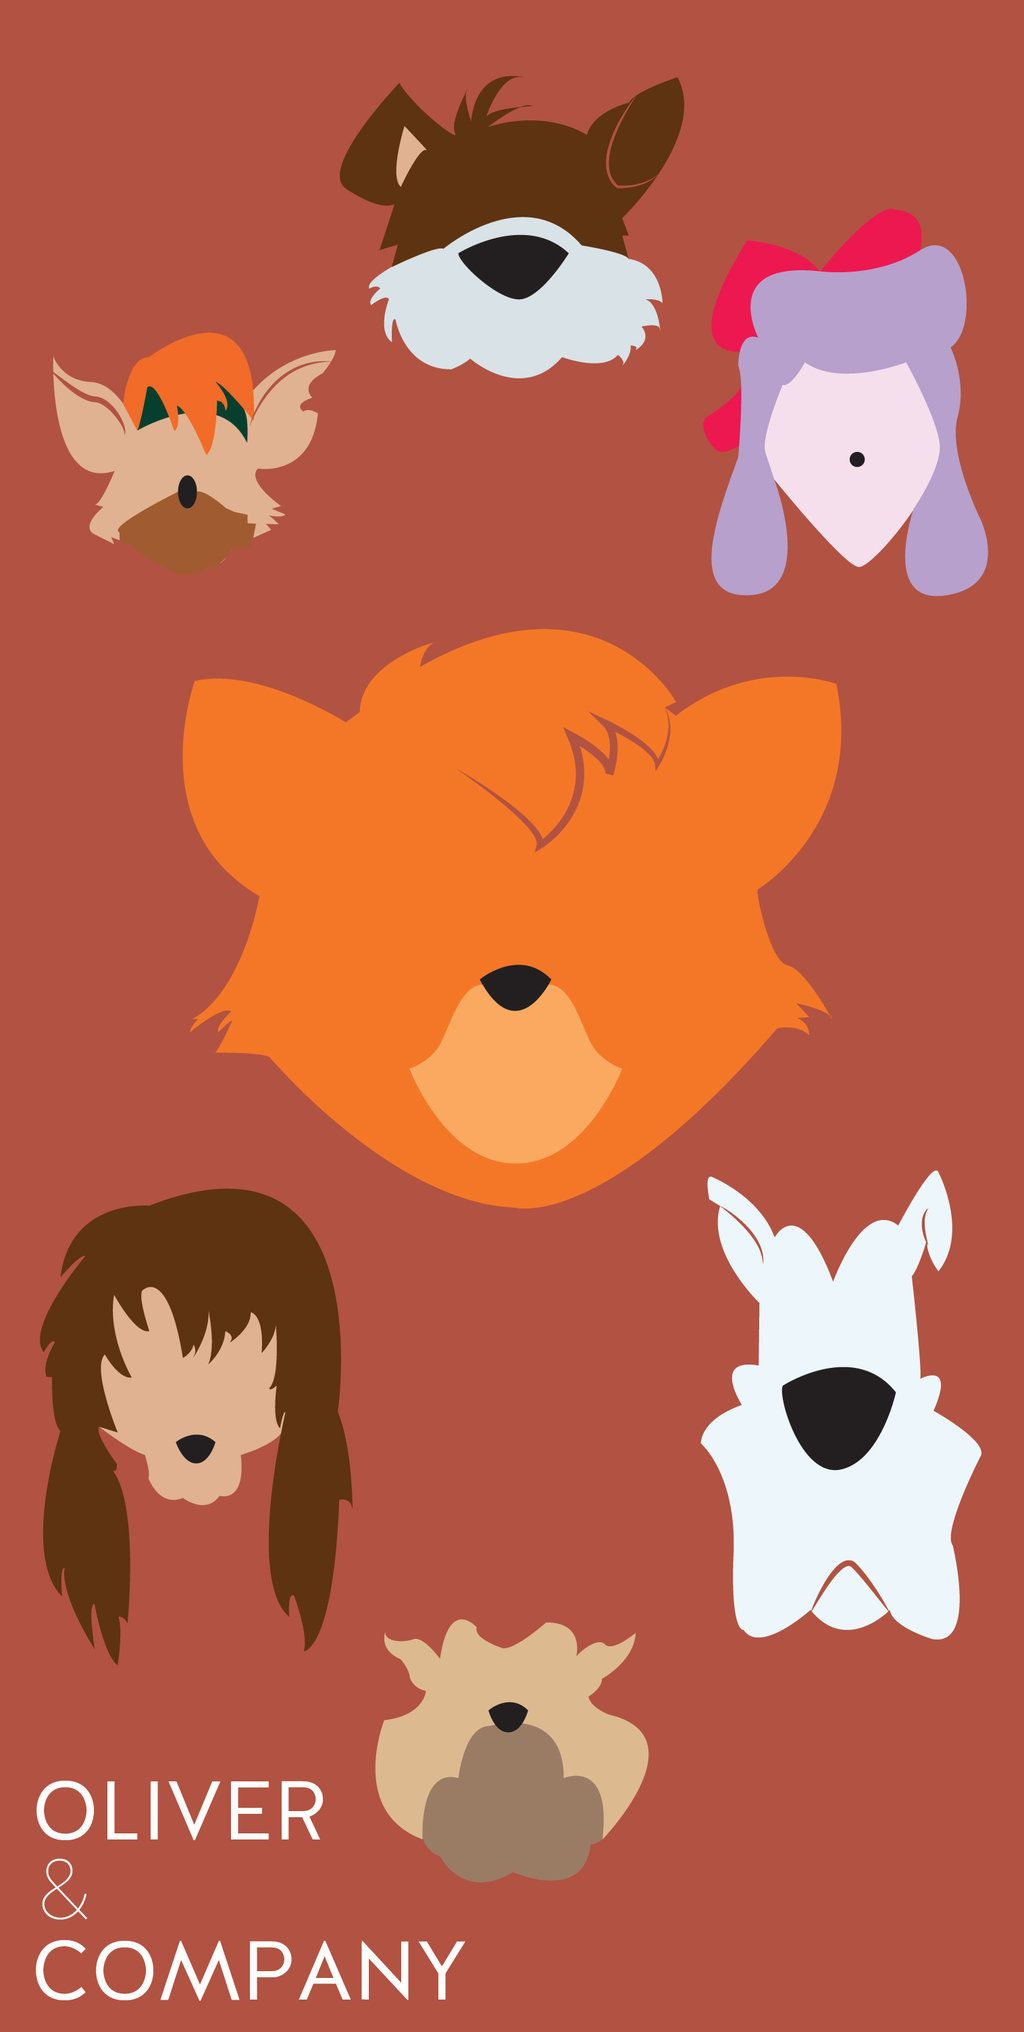 Oliver And Company By Brycedoherty On Deviantart Oliver And